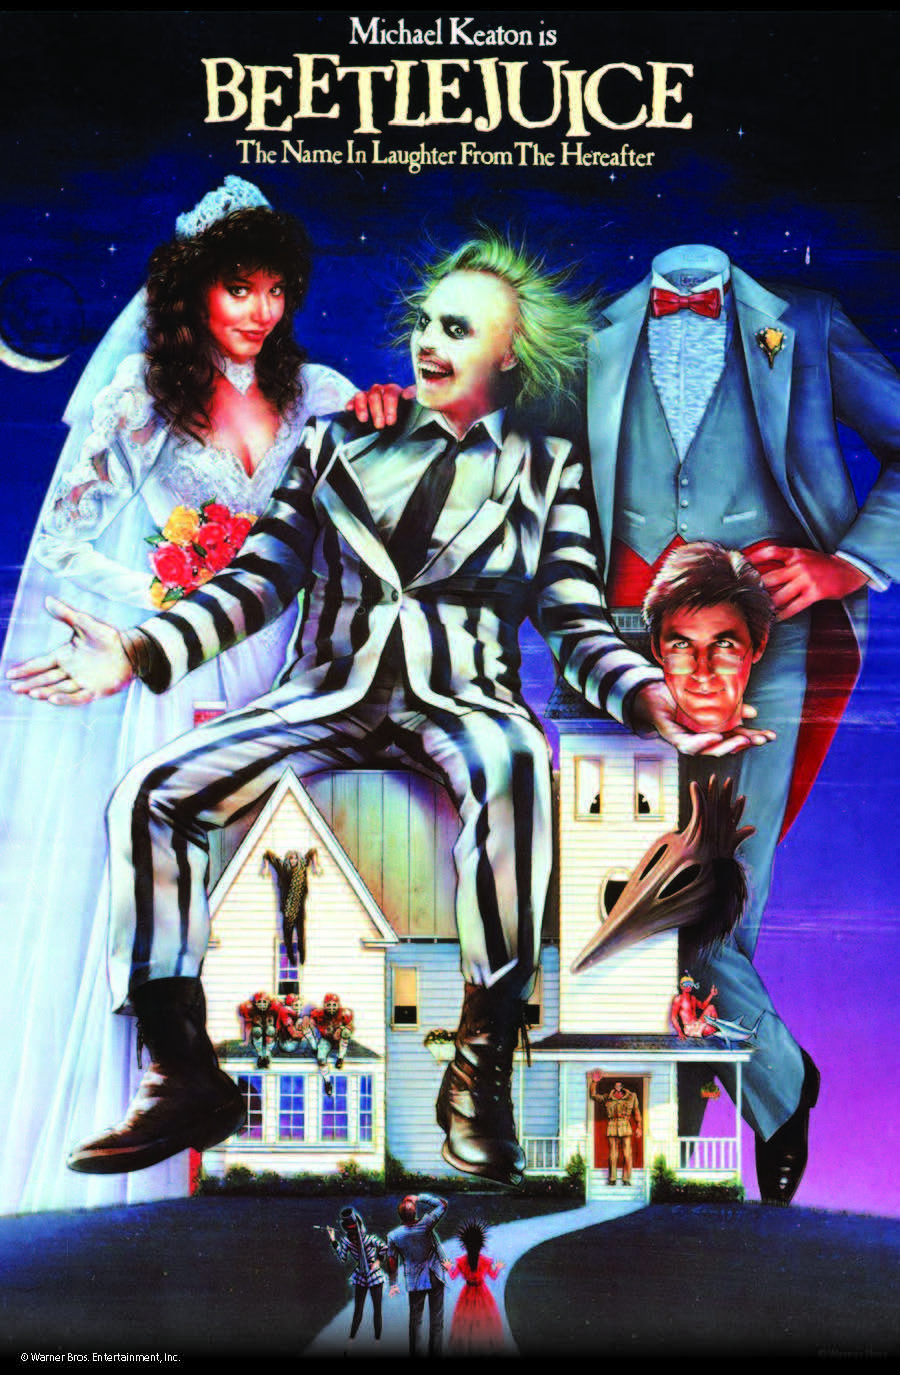 Beetlejuice Theatrical Poster